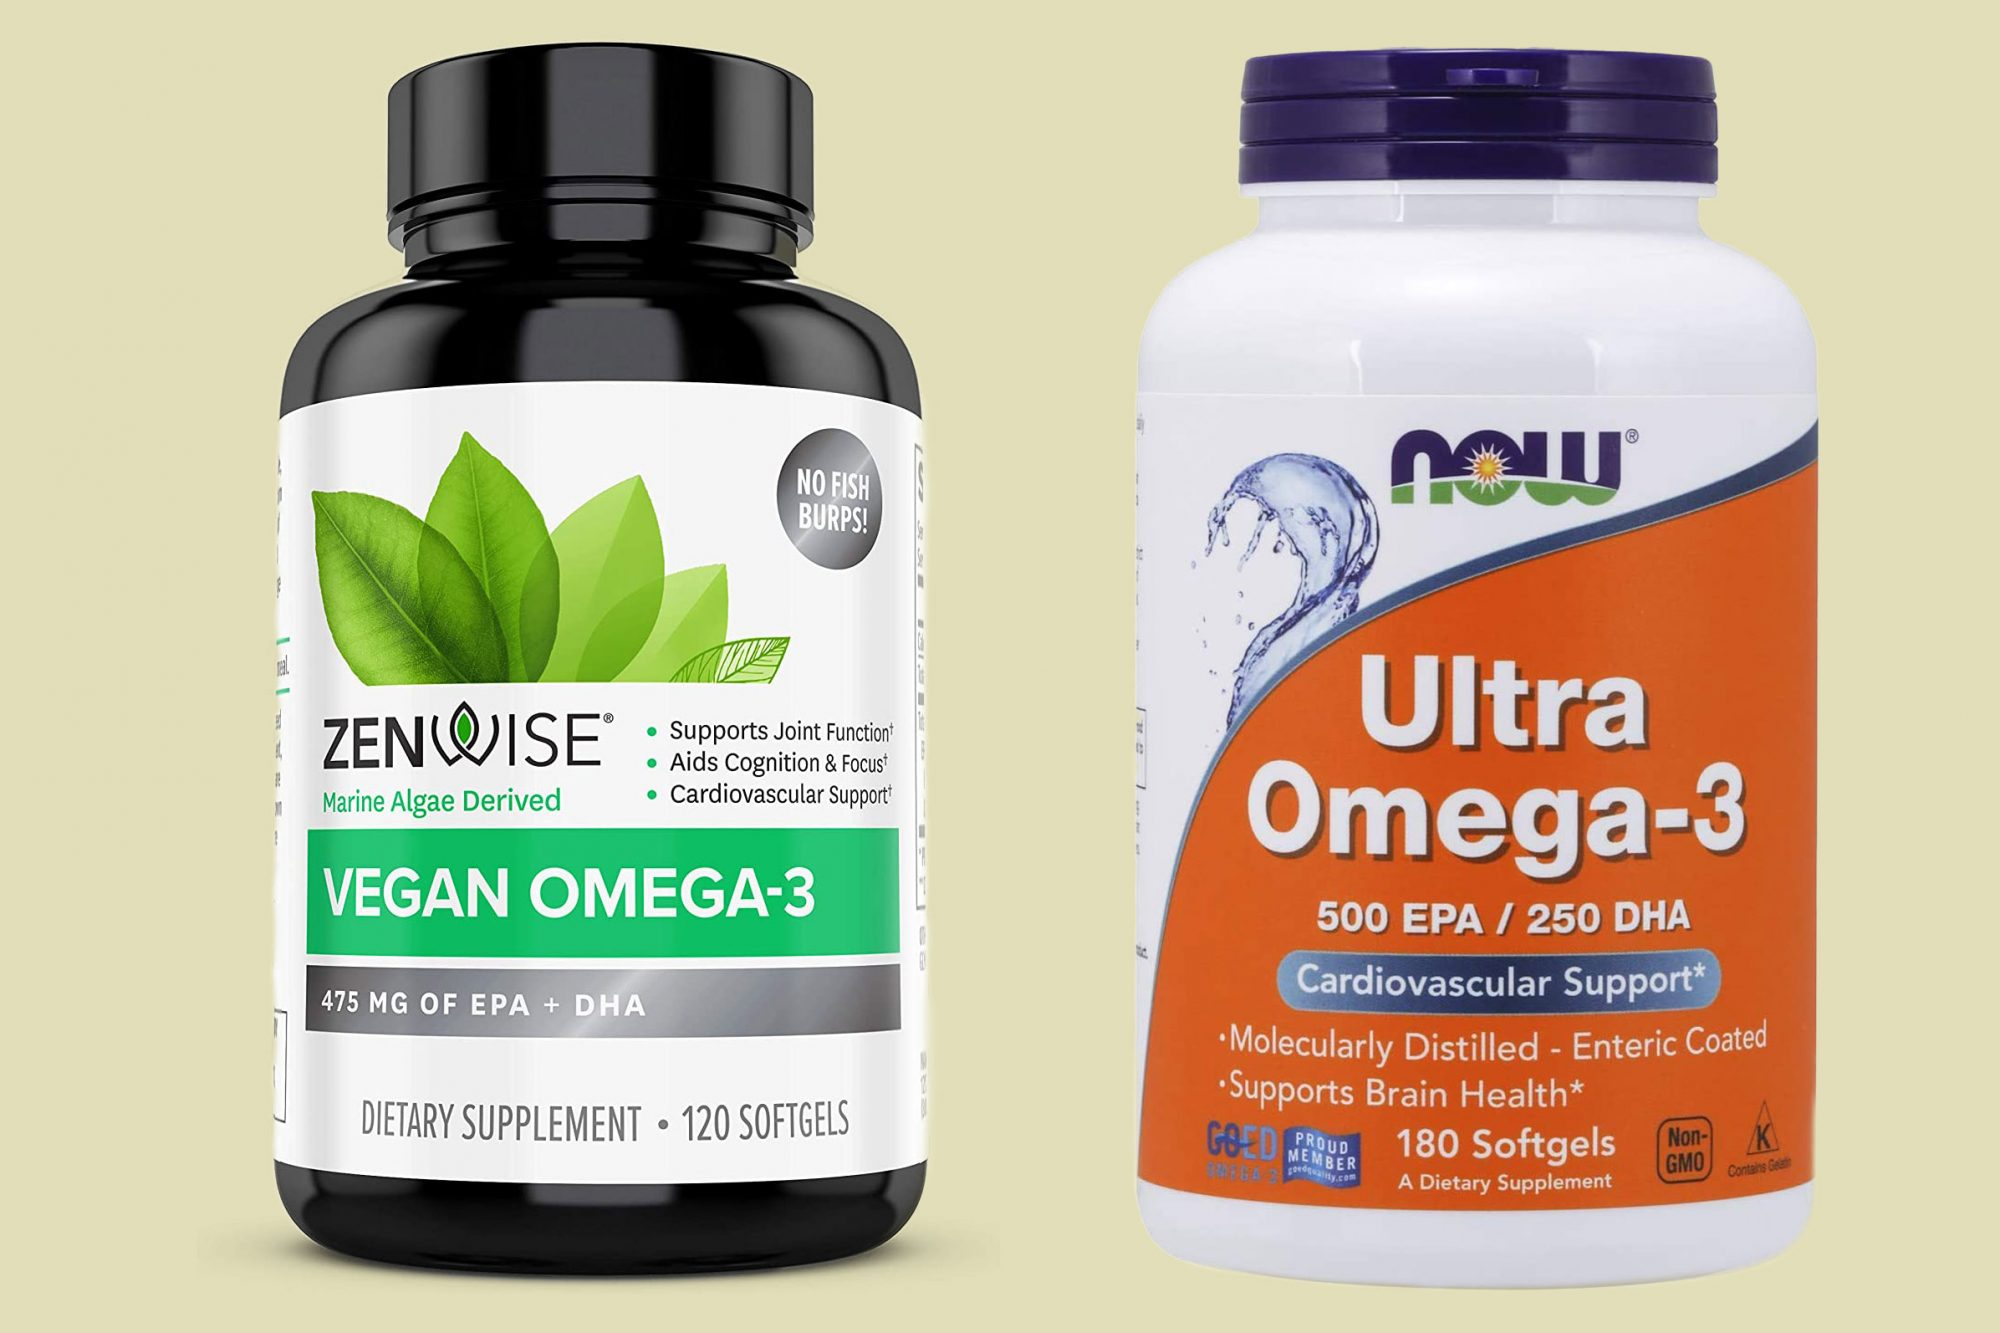 NOW Foods Ultra Omega-3 and Zenwise Vegan Omega-3 Supplement